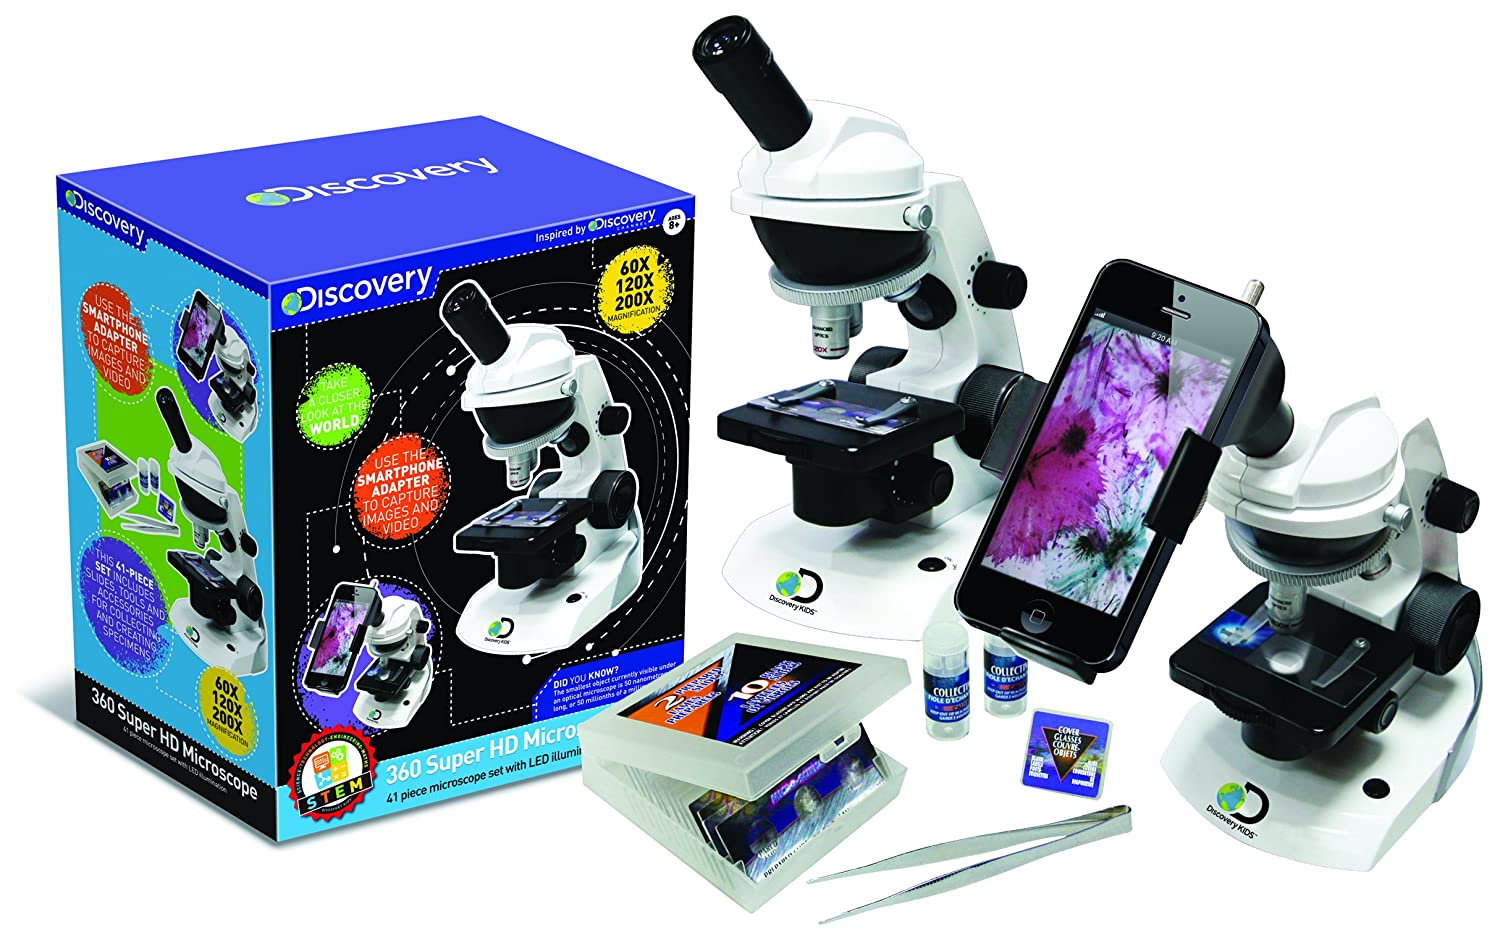 discovery channel smartphone microscope review